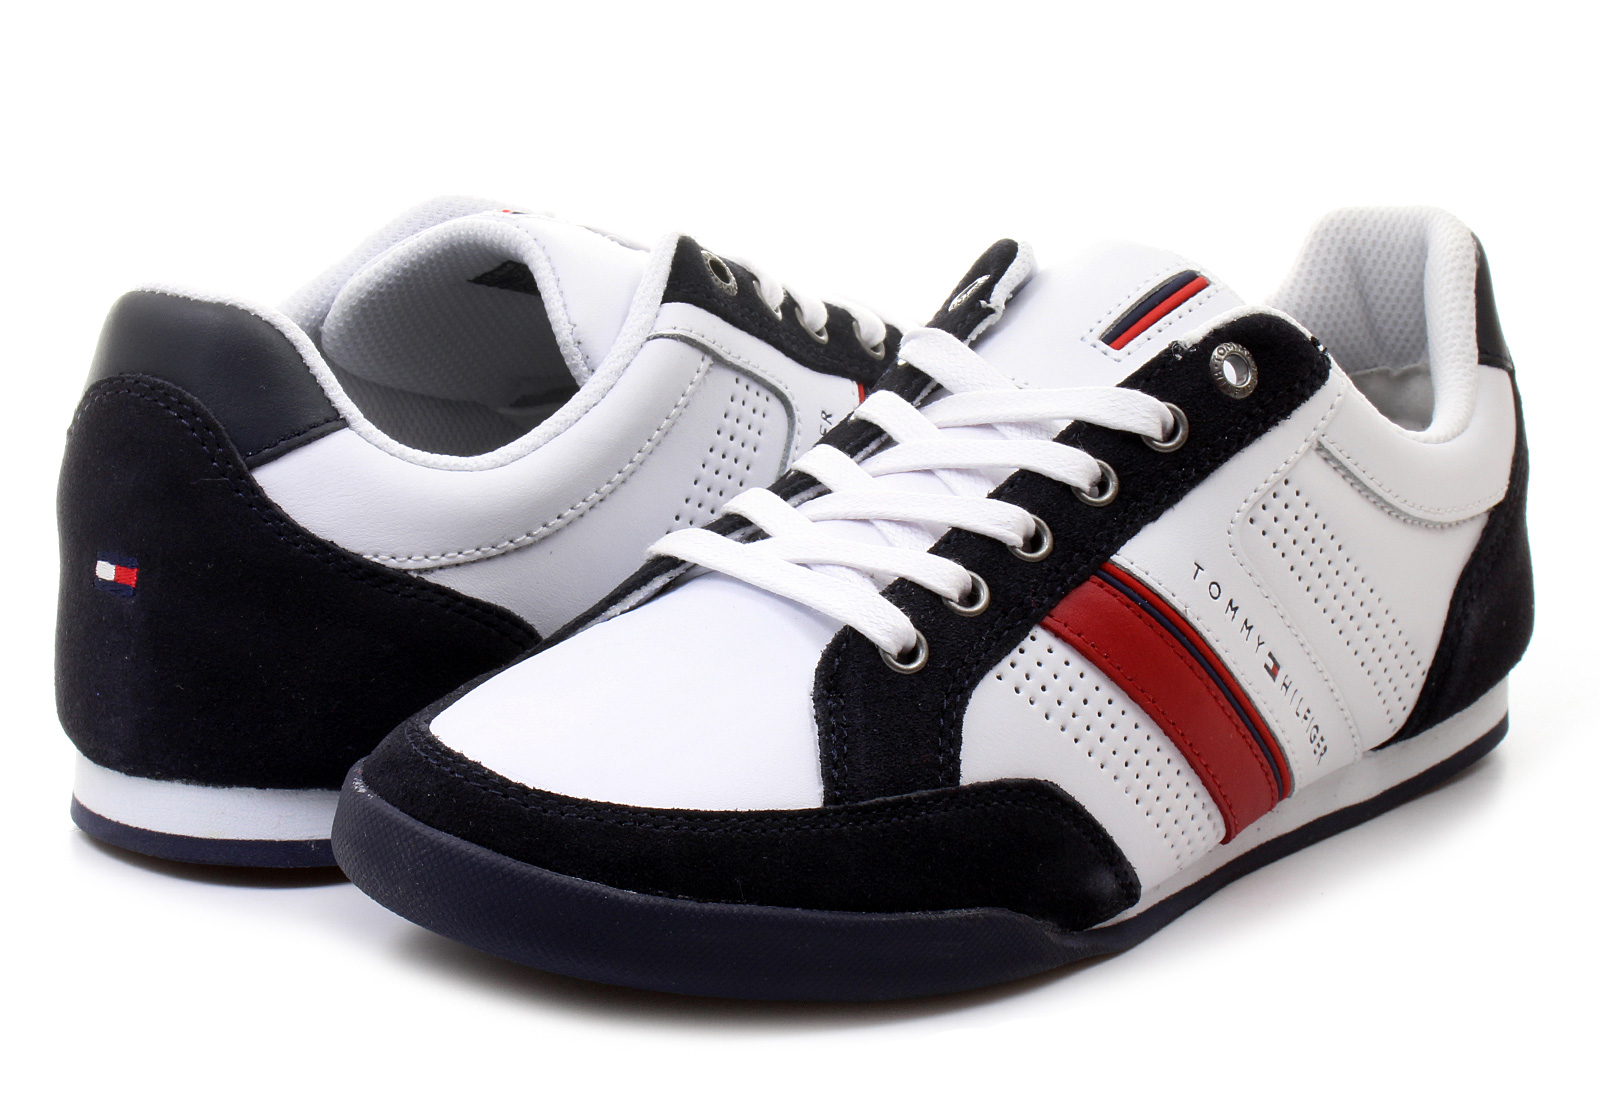 Tommy Hilfiger Black And White Shoes